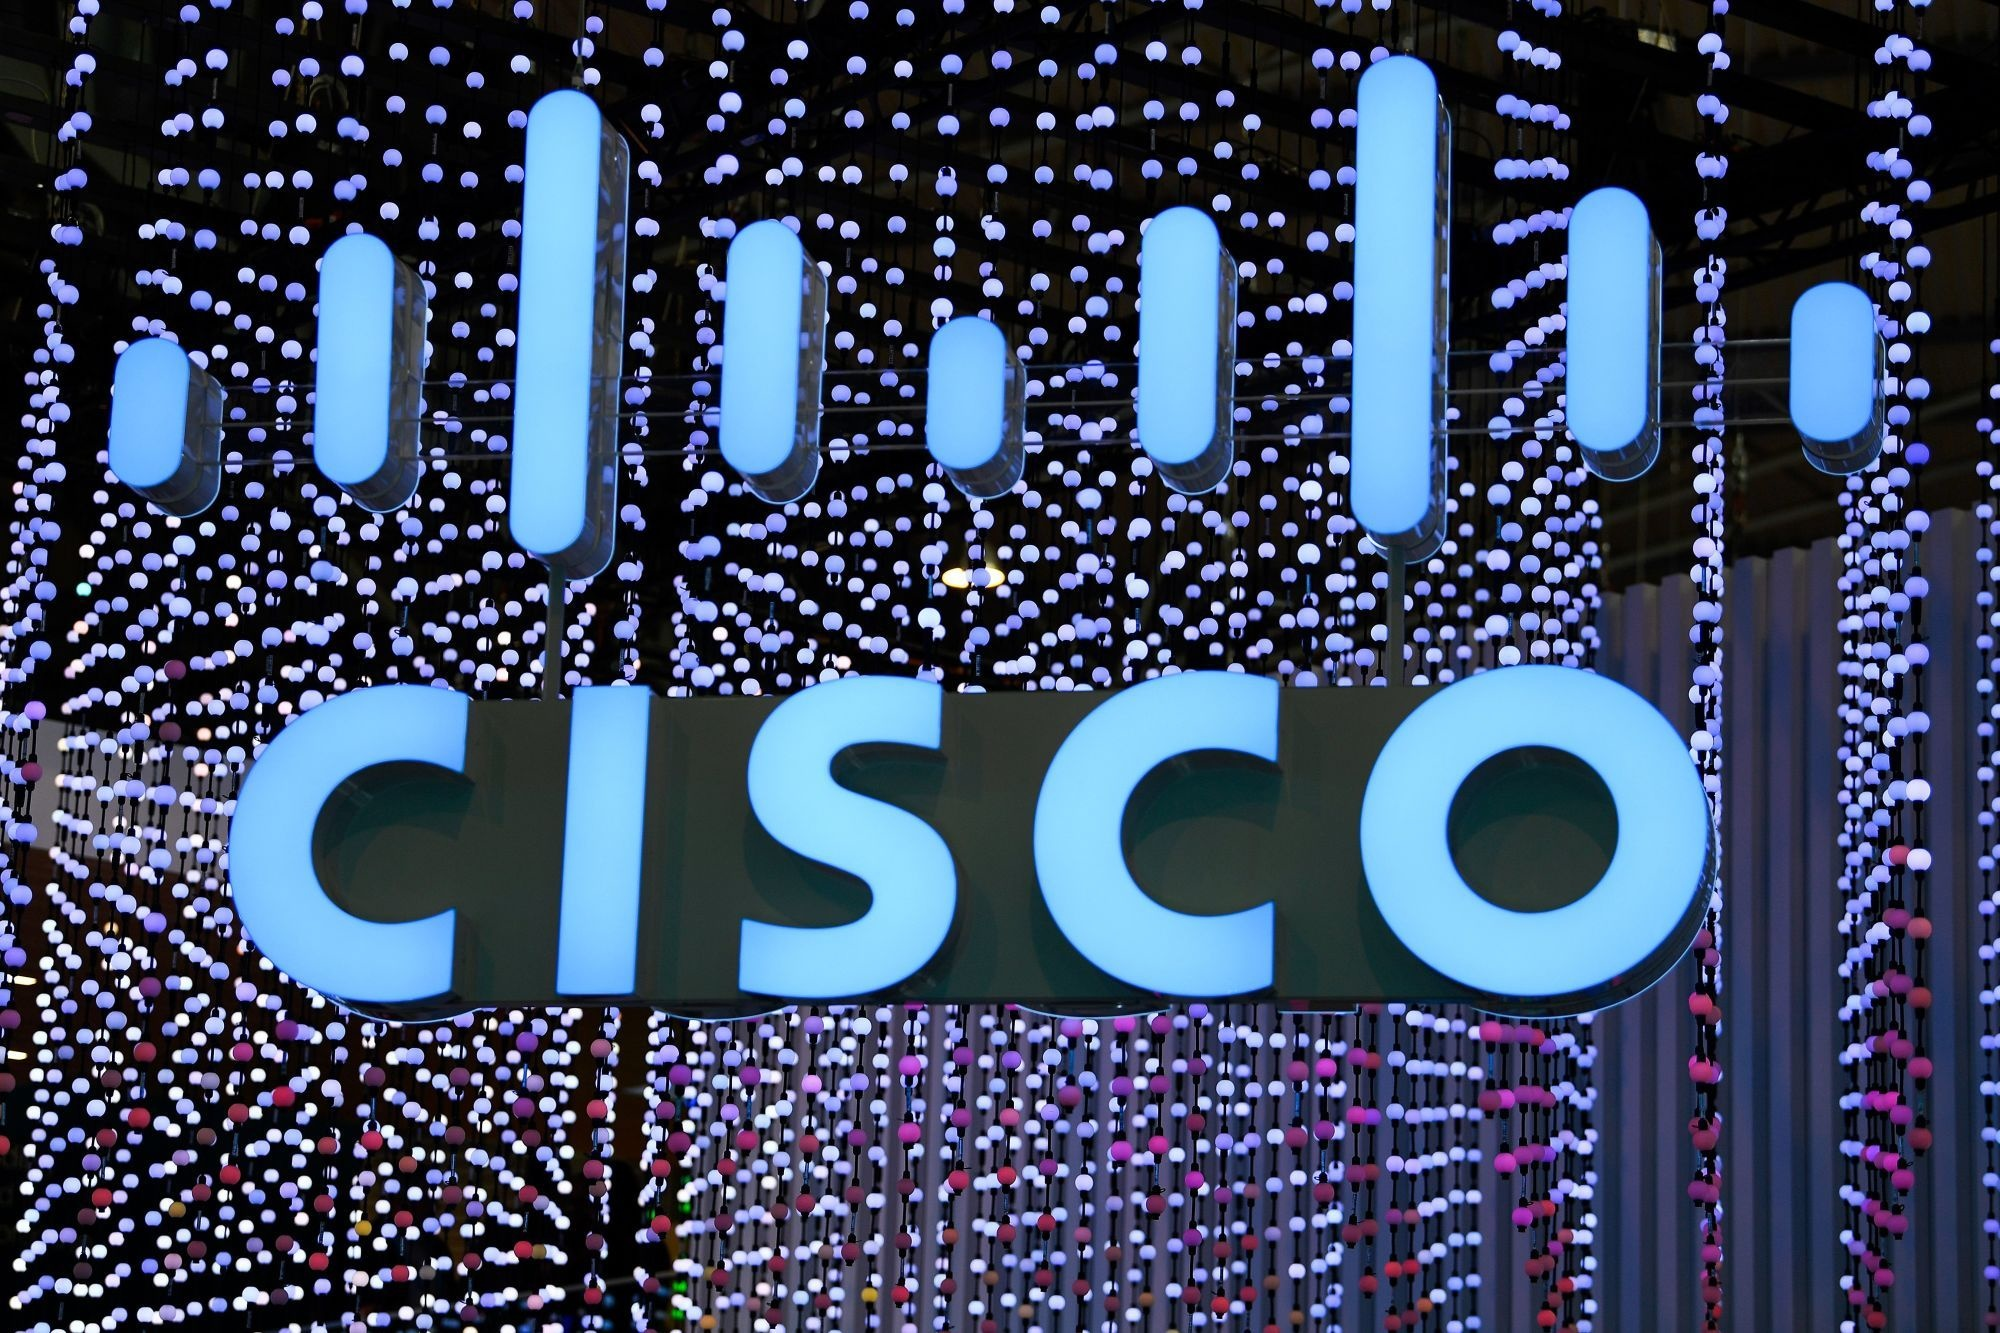 Cisco partner in Middle East, UAE & Iraq